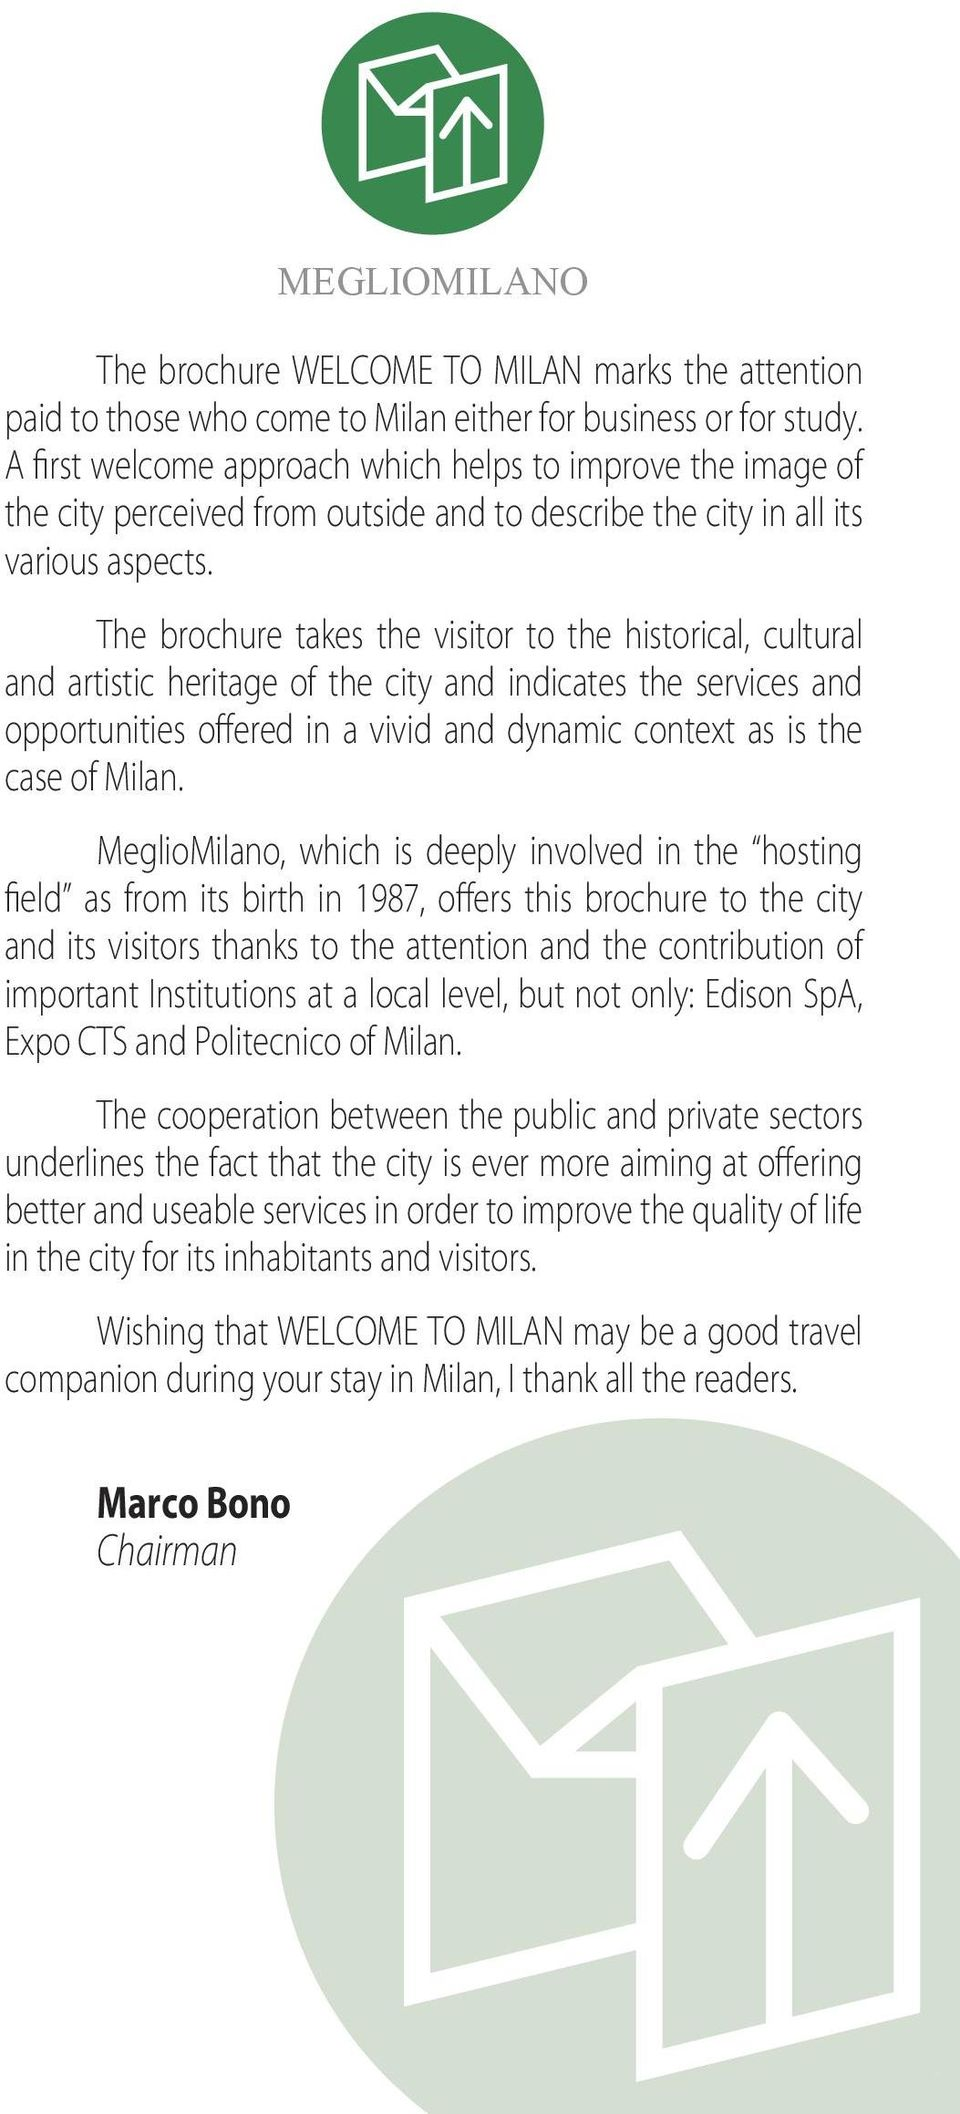 The brochure takes the visitor to the historical, cultural and artistic heritage of the city and indicates the services and opportunities offered in a vivid and dynamic context as is the case of